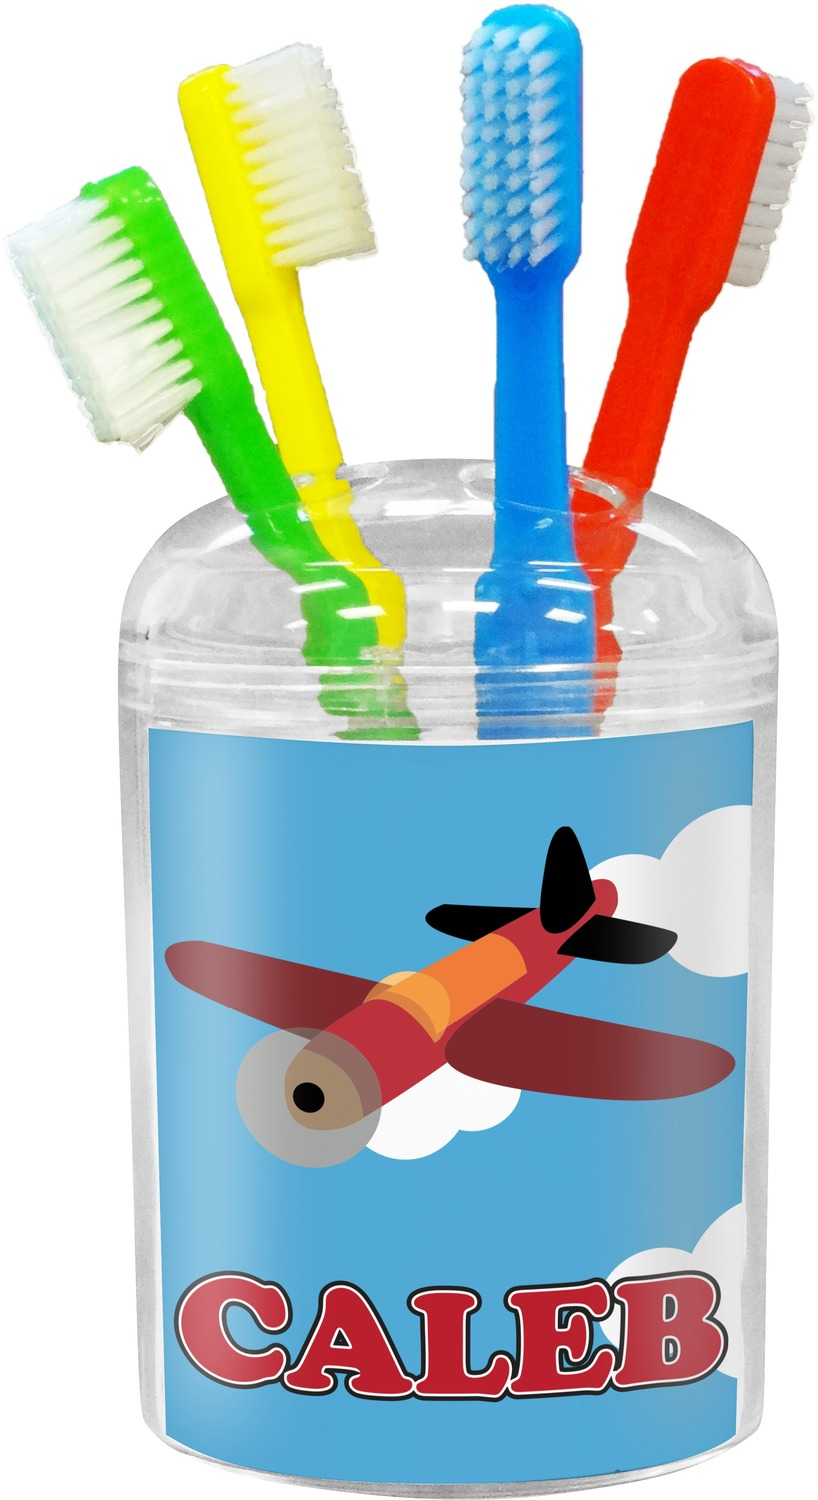 Bathroom clipart toothbrush. Airplane holder personalized youcustomizeit